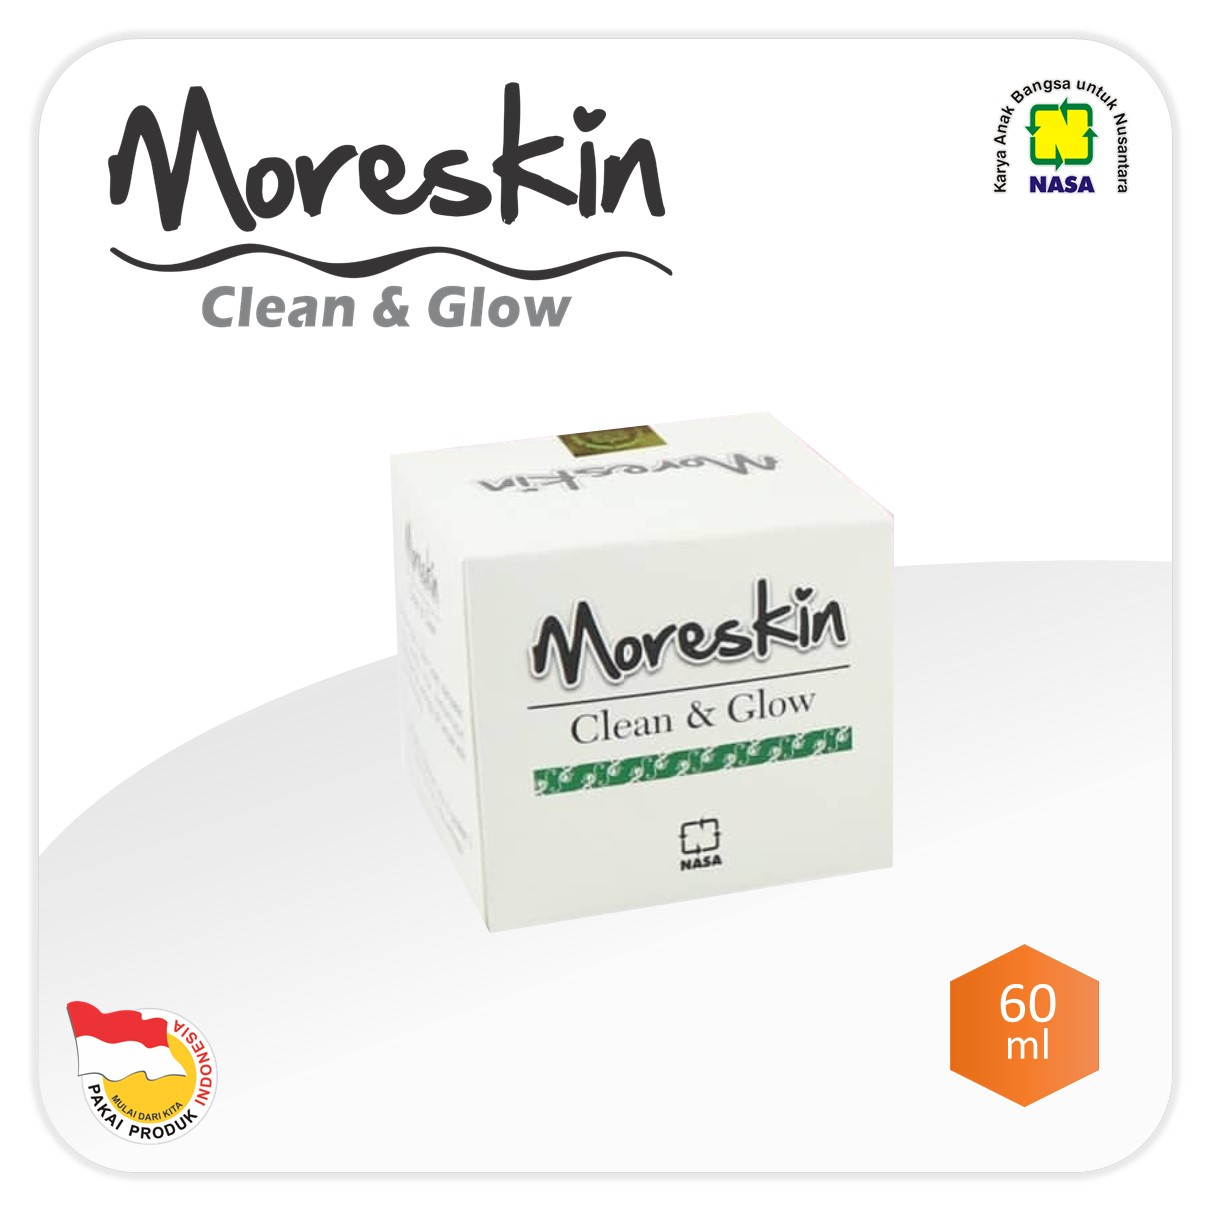 Moreskin Clean & Glow Cream